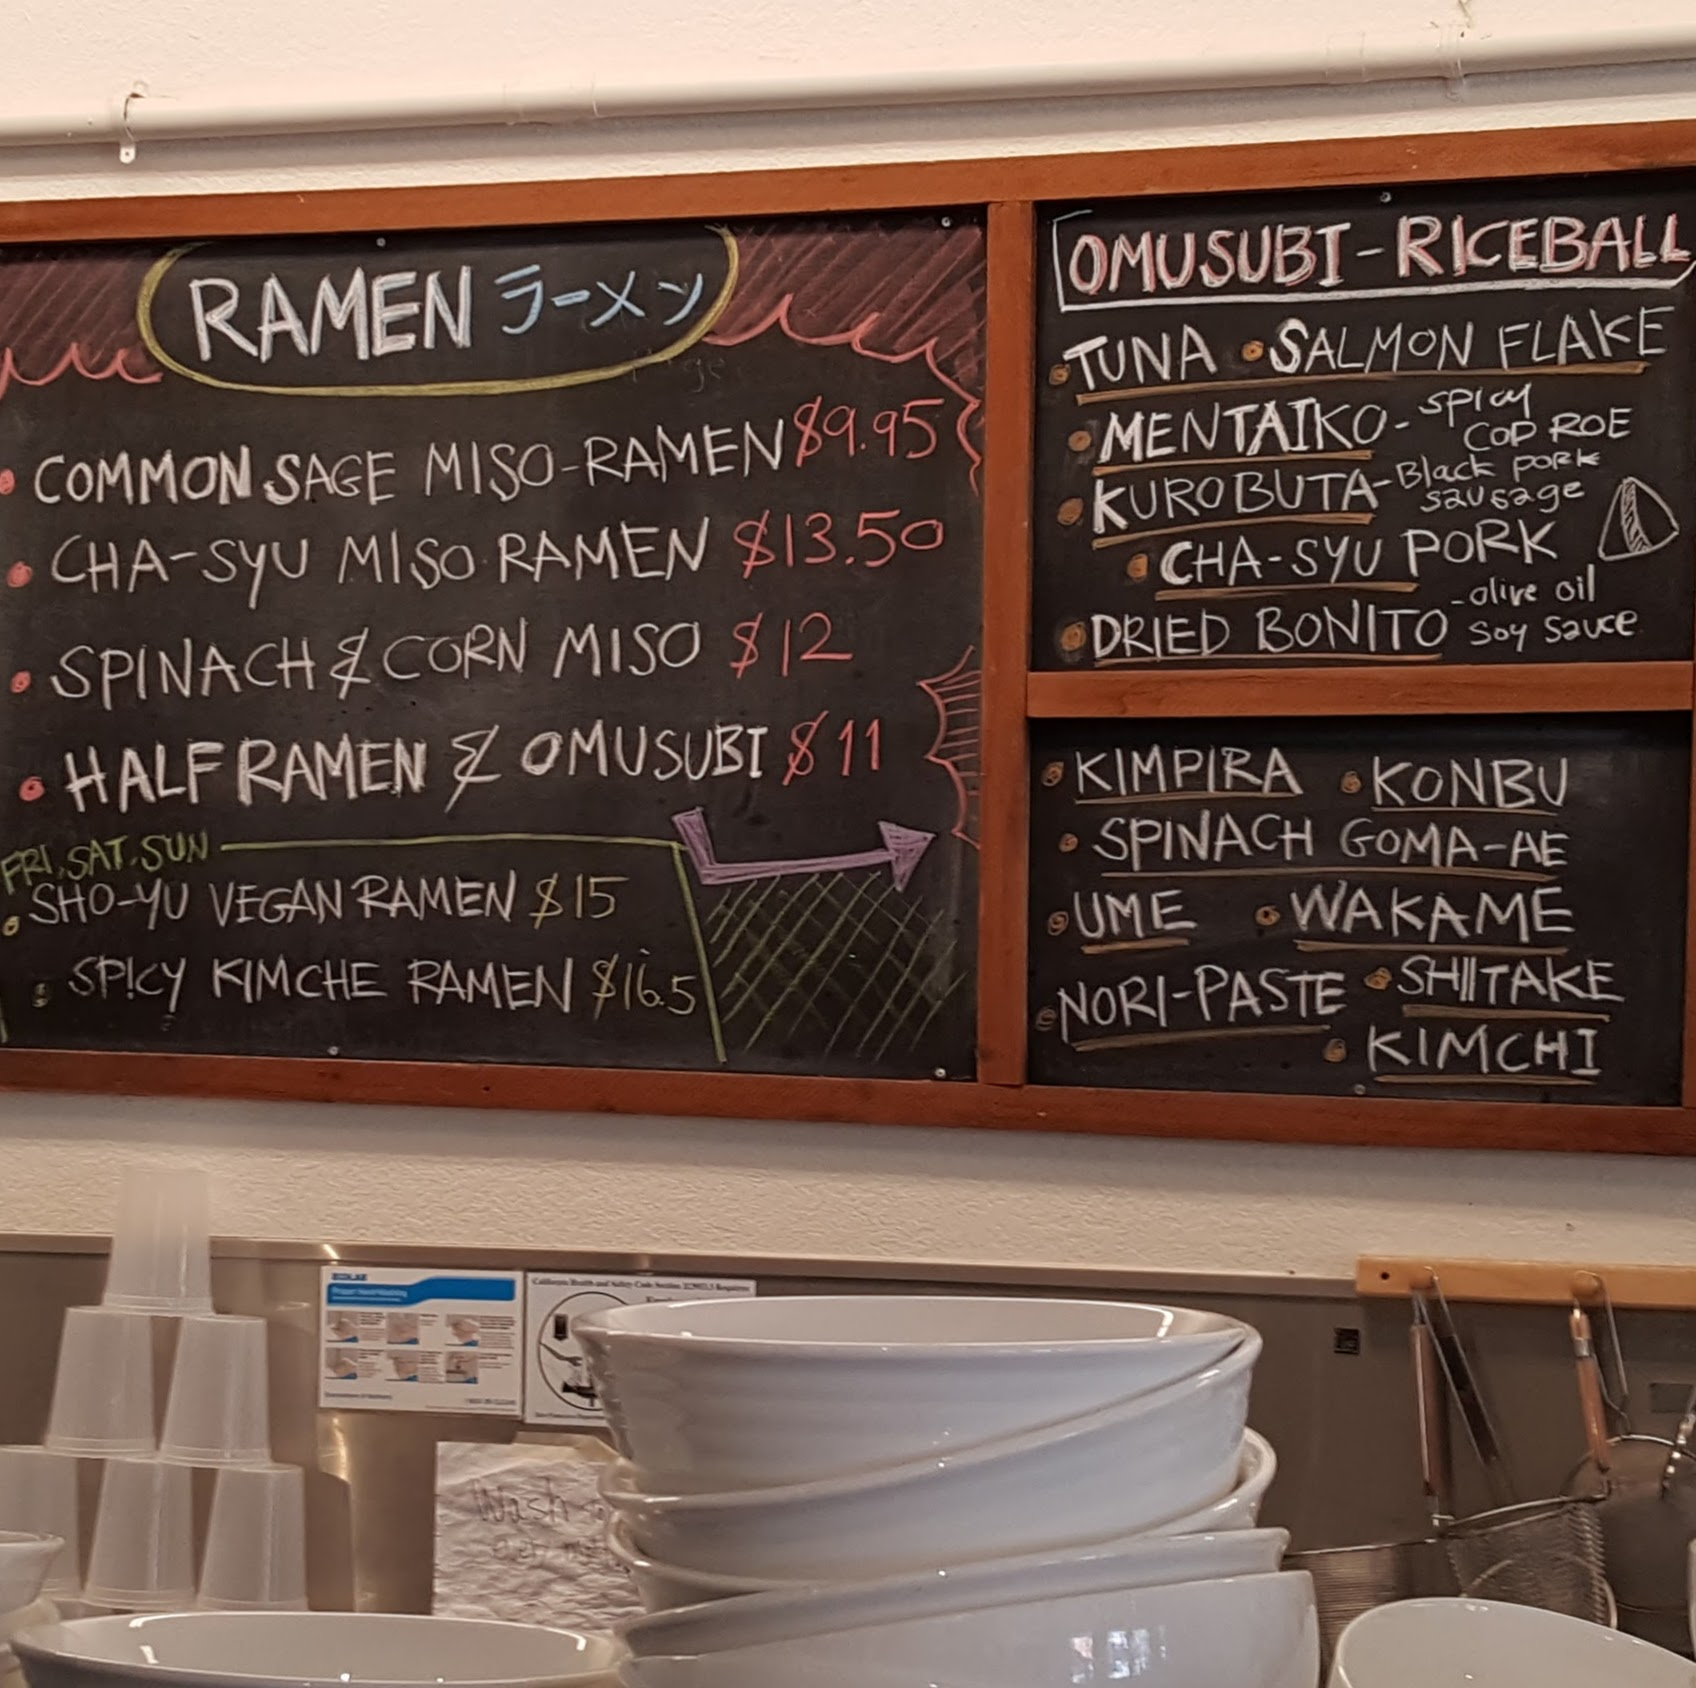 Most of the menu